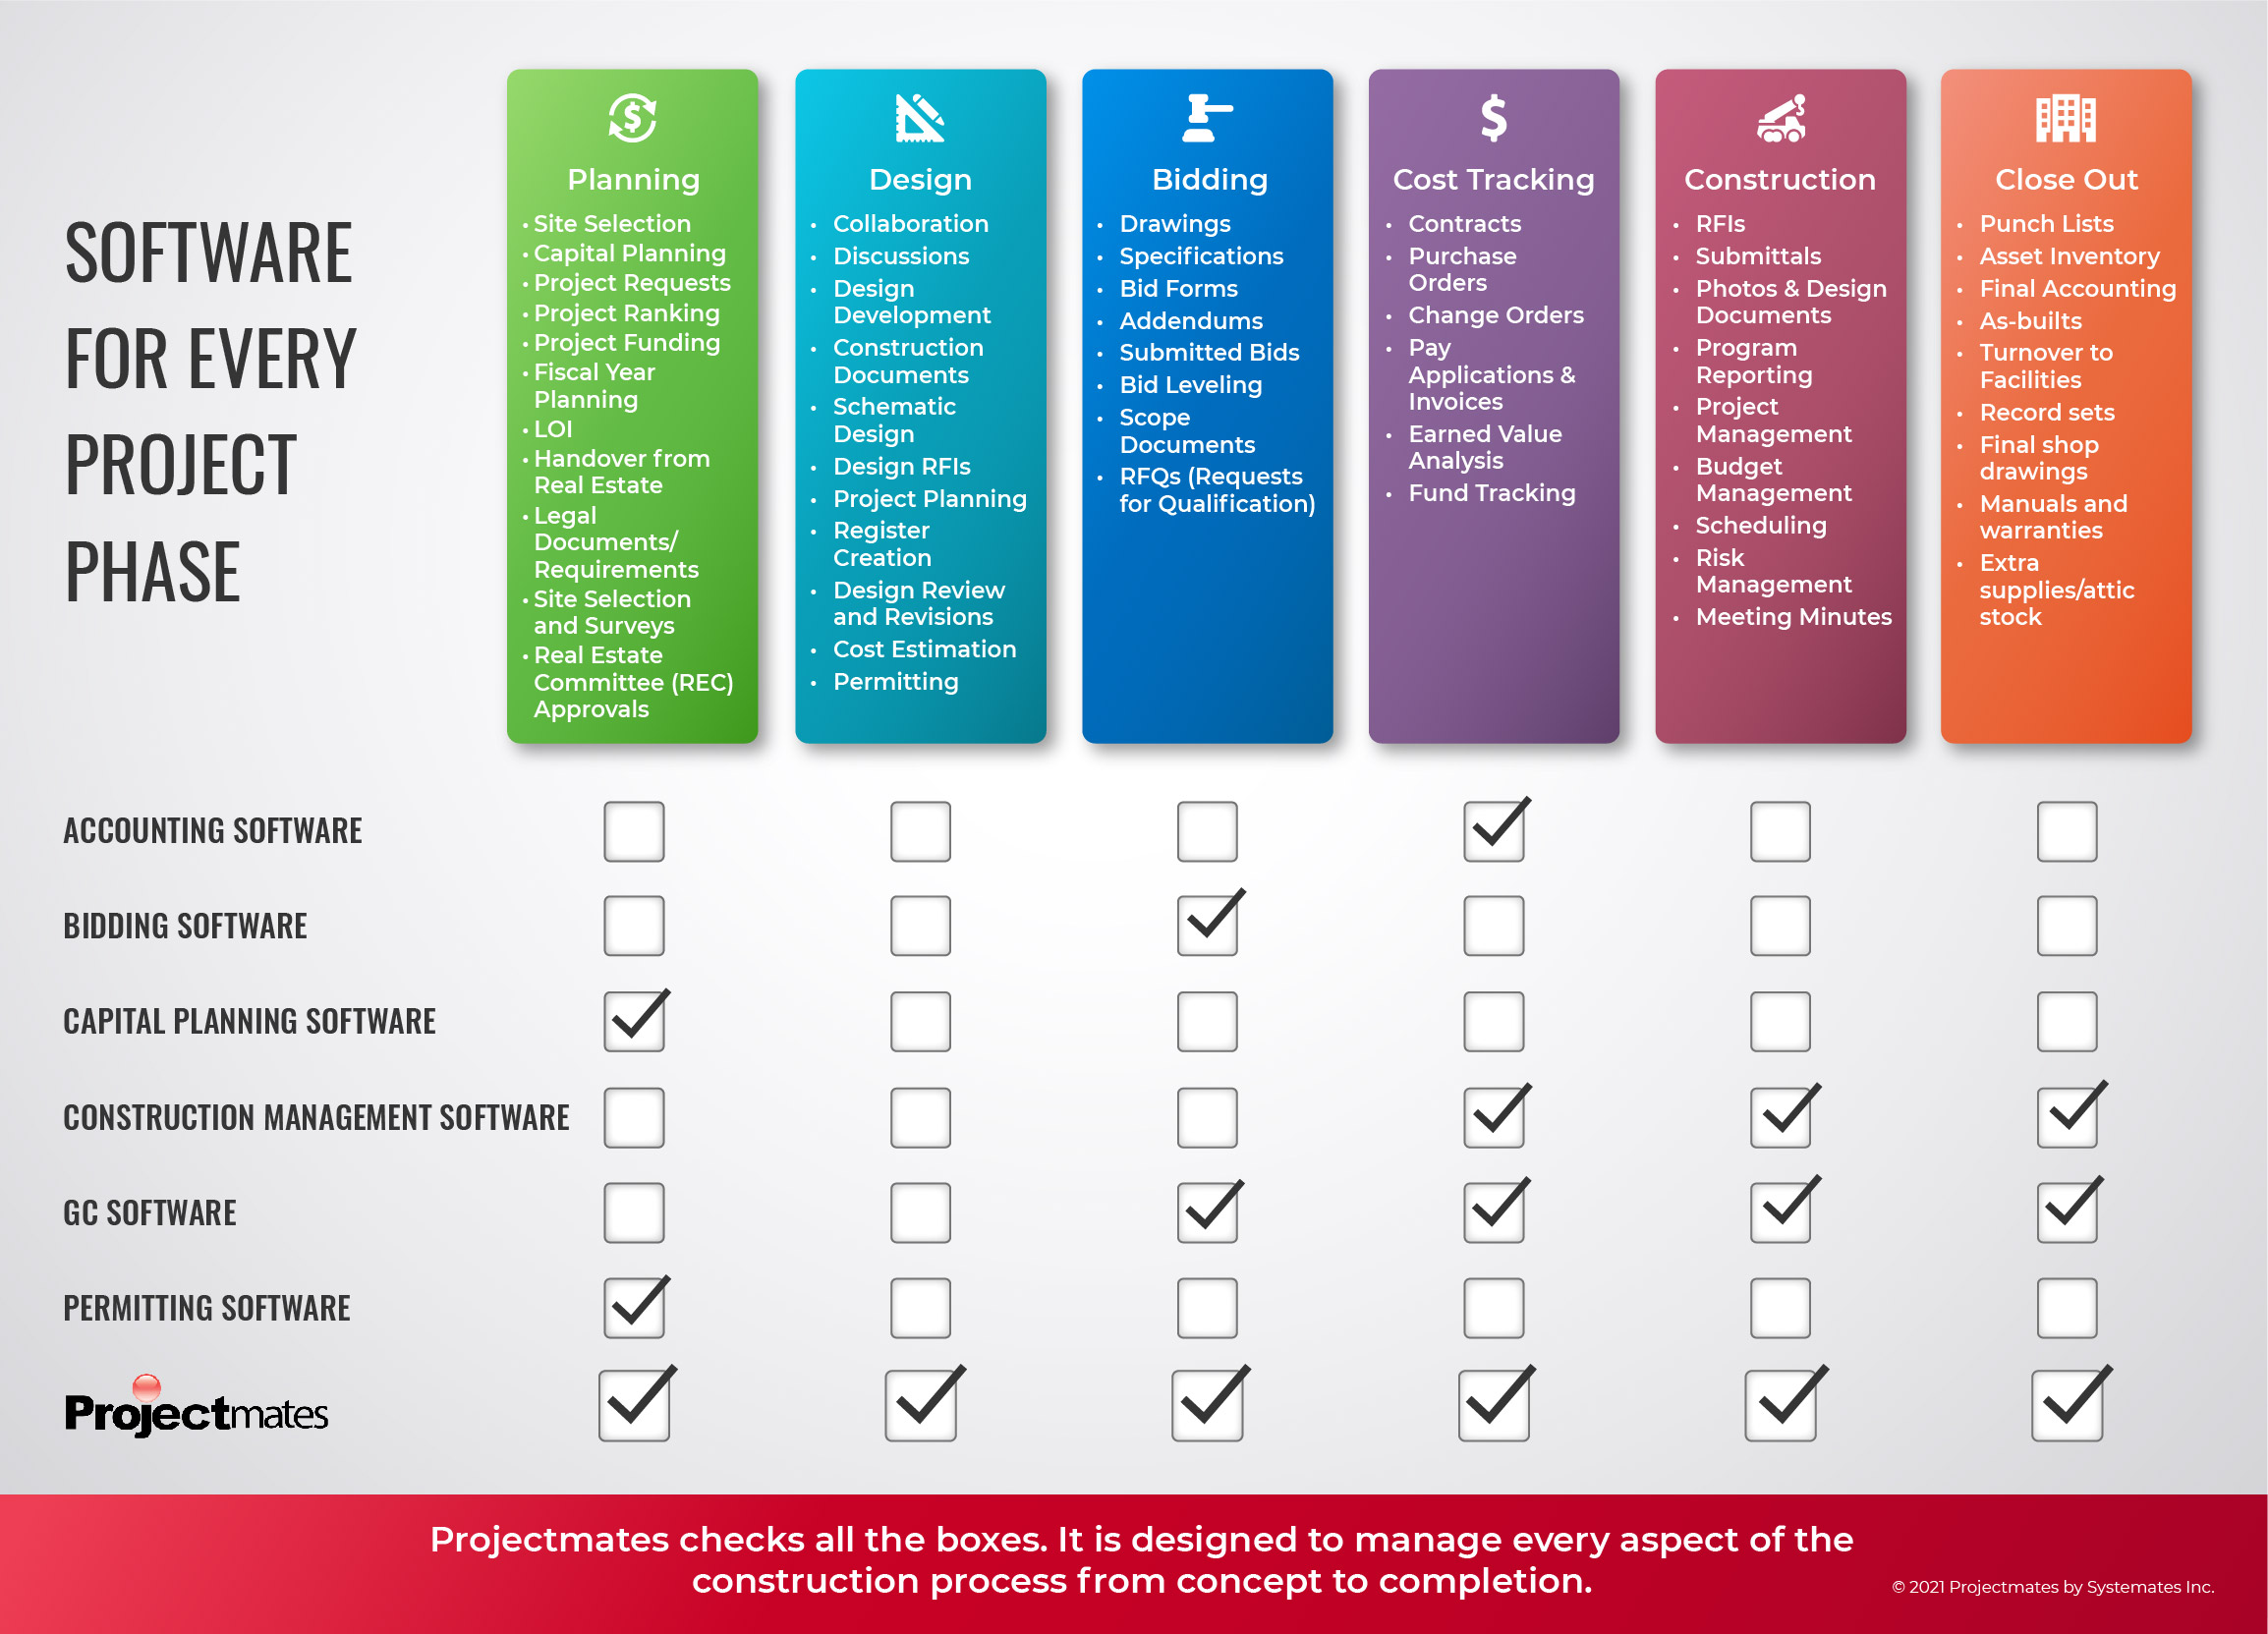 infographic showing checklist of software needs that Projectmates provides